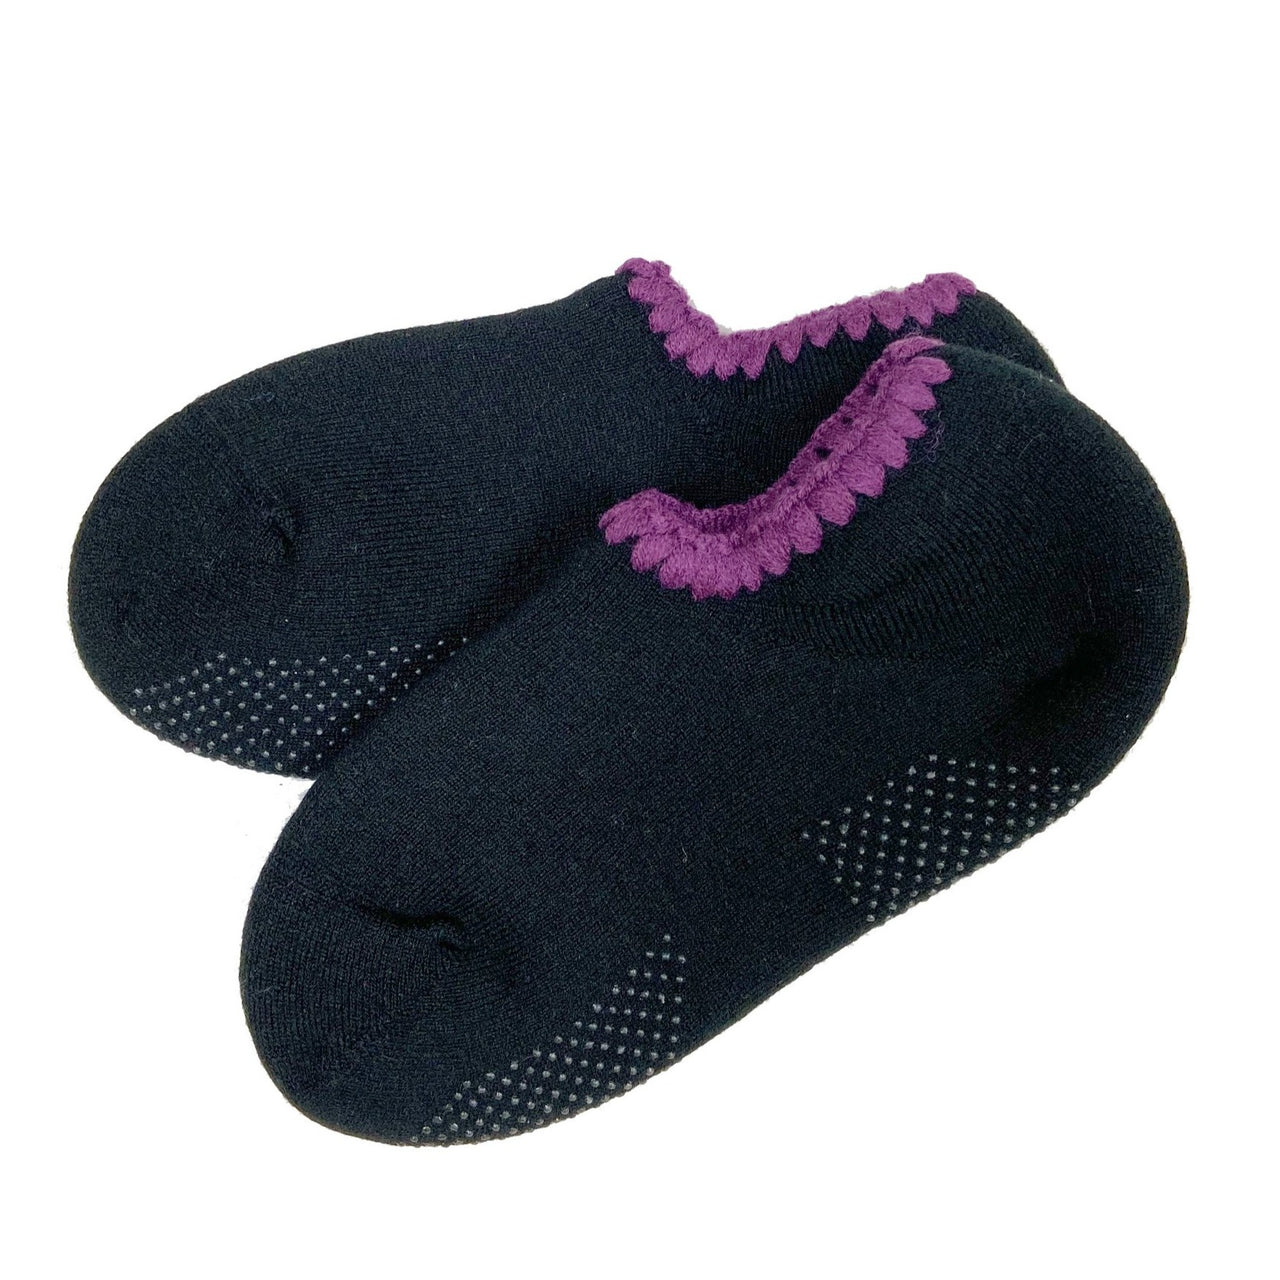 CHERRYSTONE® Slipper Socks | Classic Color with Grips | Black-Purple - CHERRYSTONE